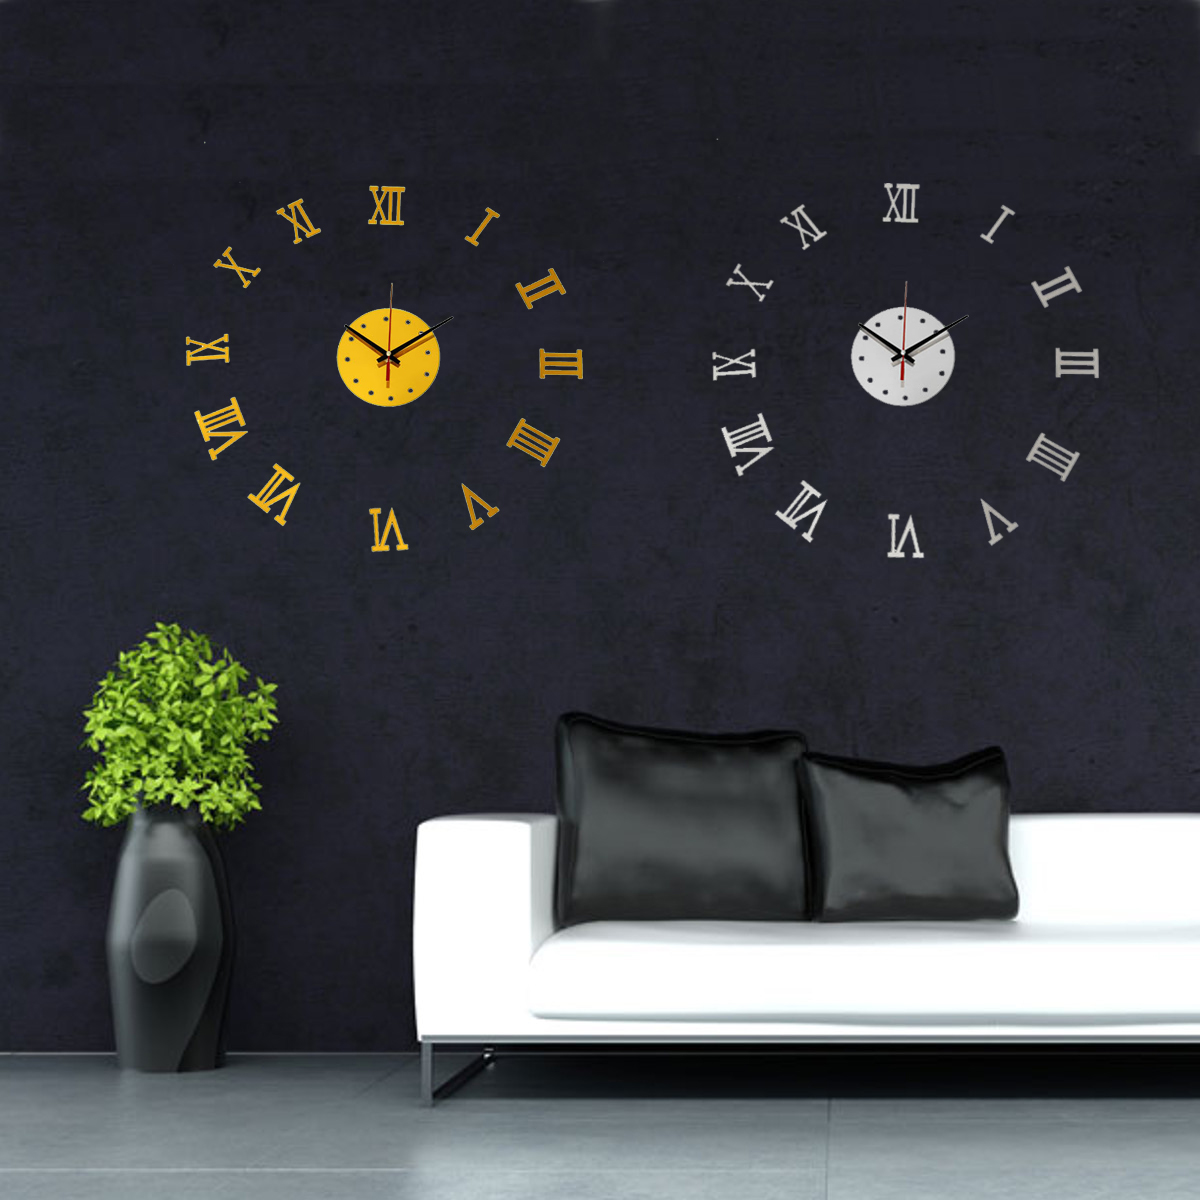 modern design wanduhr spiegel uhren wandtattoo zimmer wand 3d dekouhr auswahl ebay. Black Bedroom Furniture Sets. Home Design Ideas